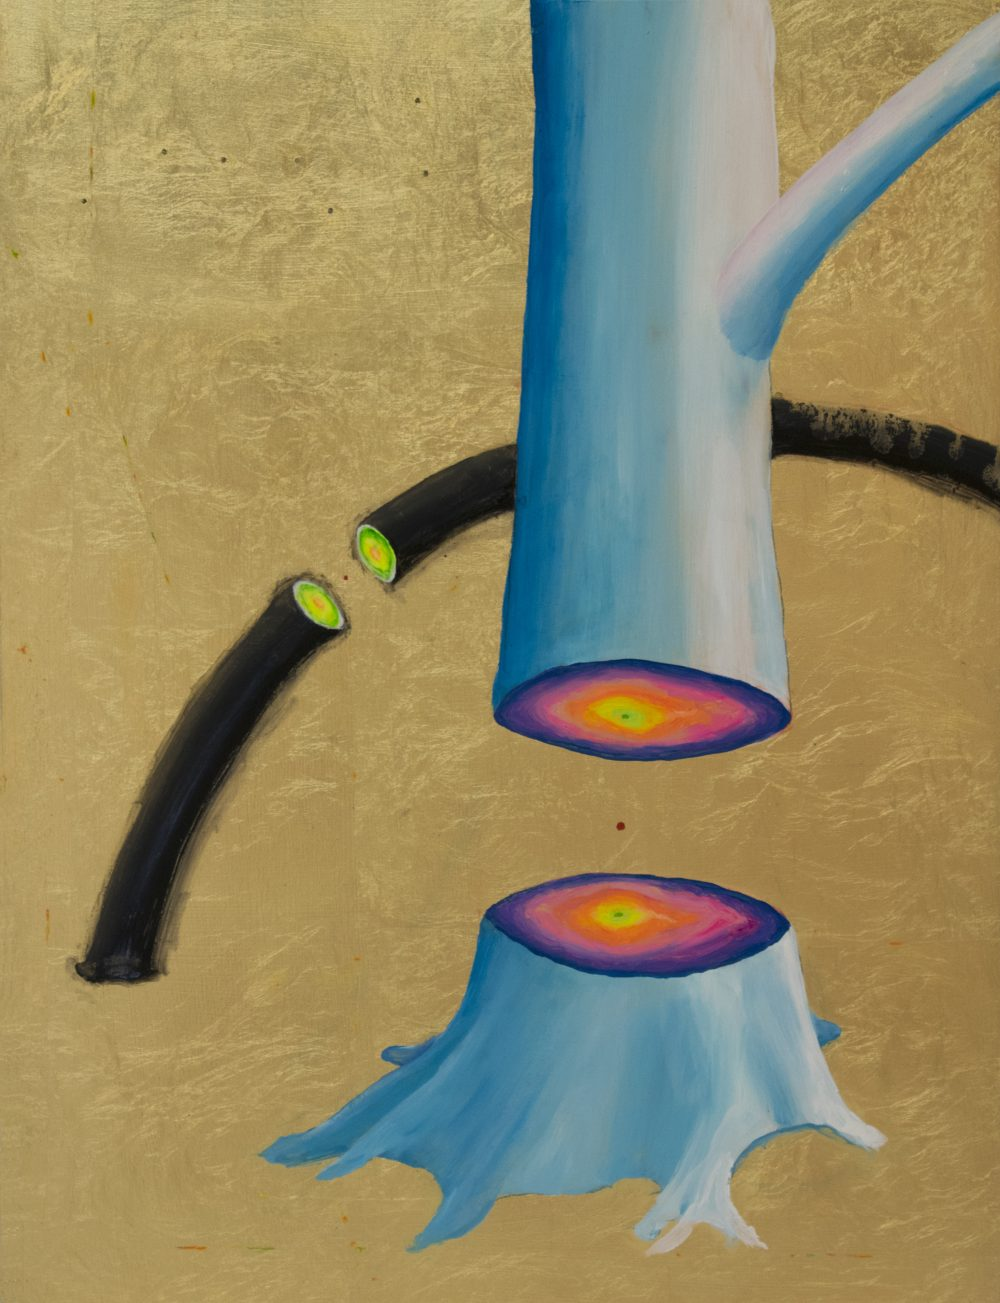 Painting of blue tree trunk cut in half revealing pink and yellow tree rings; gold leaf background; a black curved rod or stick is behind the tree, also cut in two pieces.